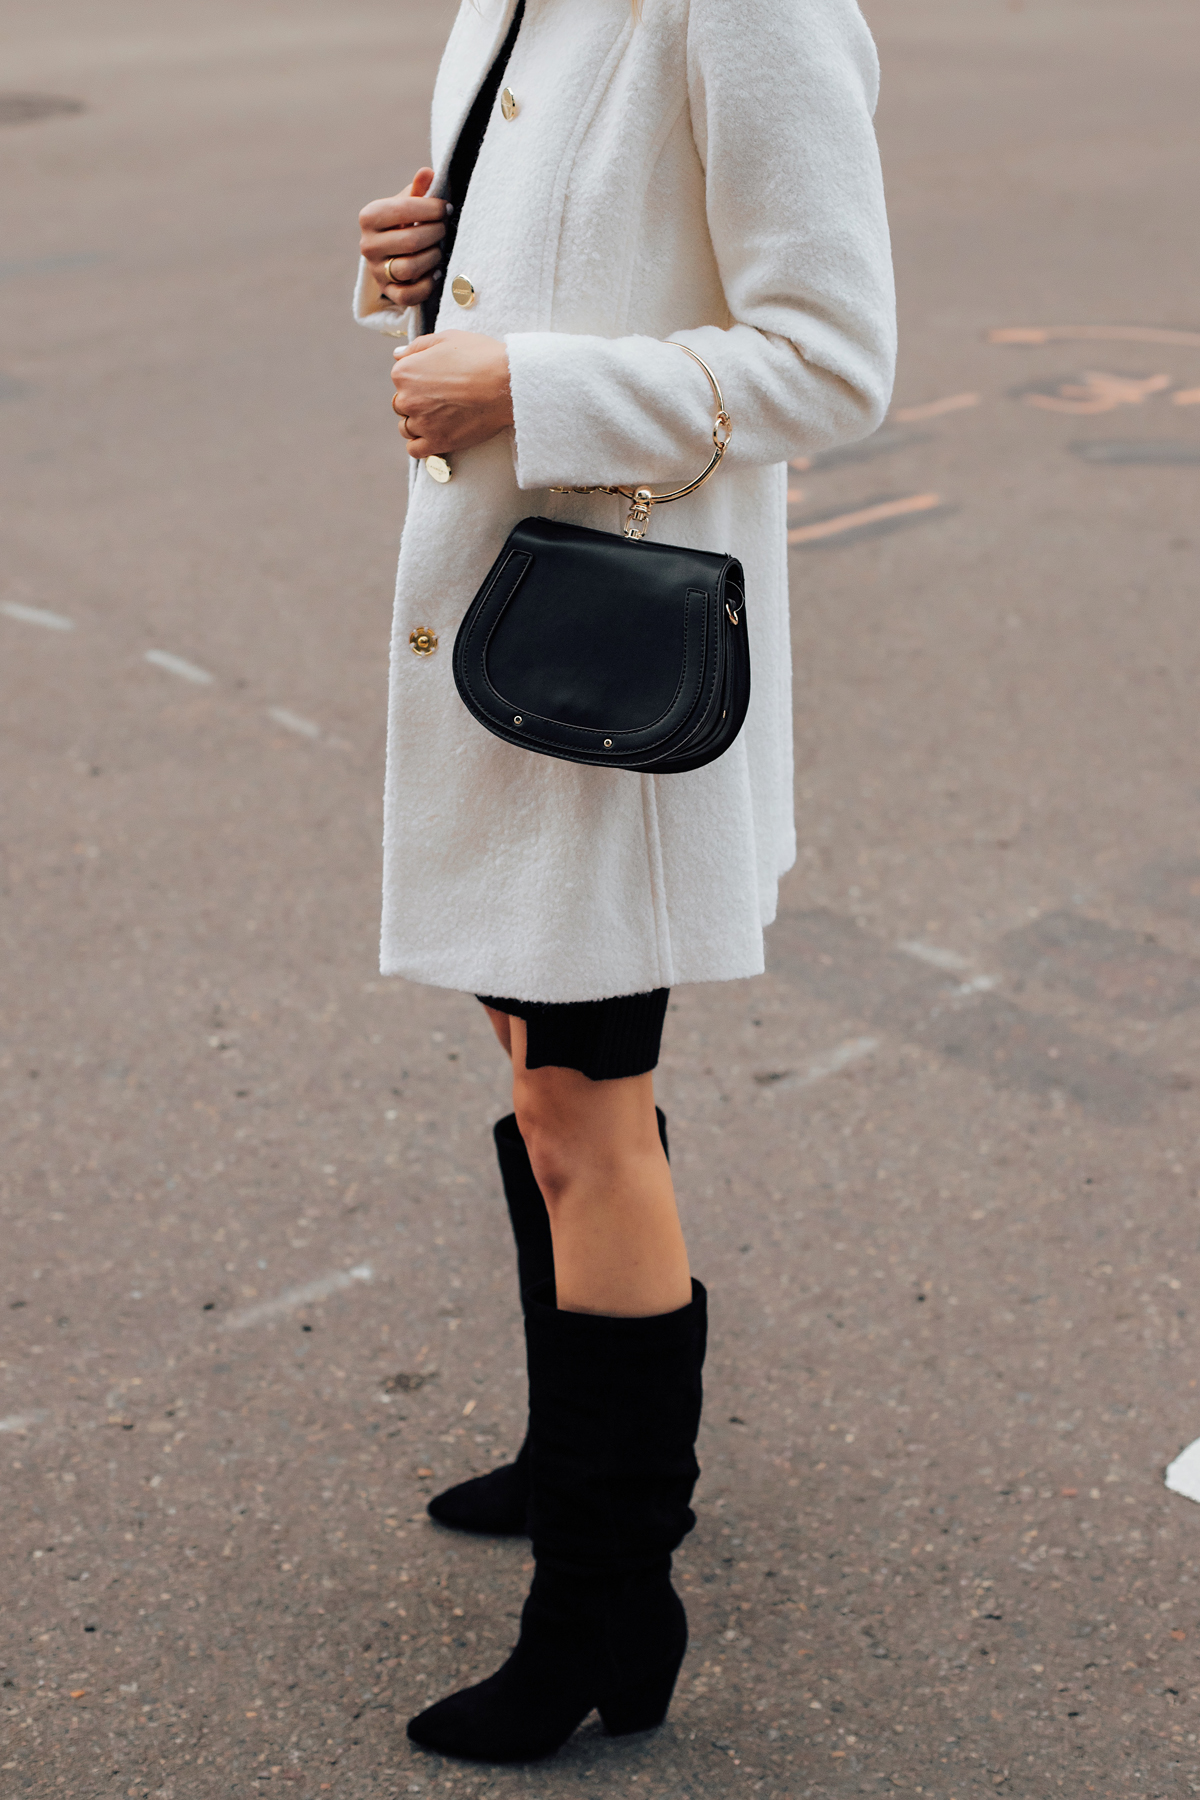 Blonde Woman Wearing Winter White Coat Black Slouchy Boots Black Clutch Handbag Fashion Jackson San Diego Fashion Blogger Street Style